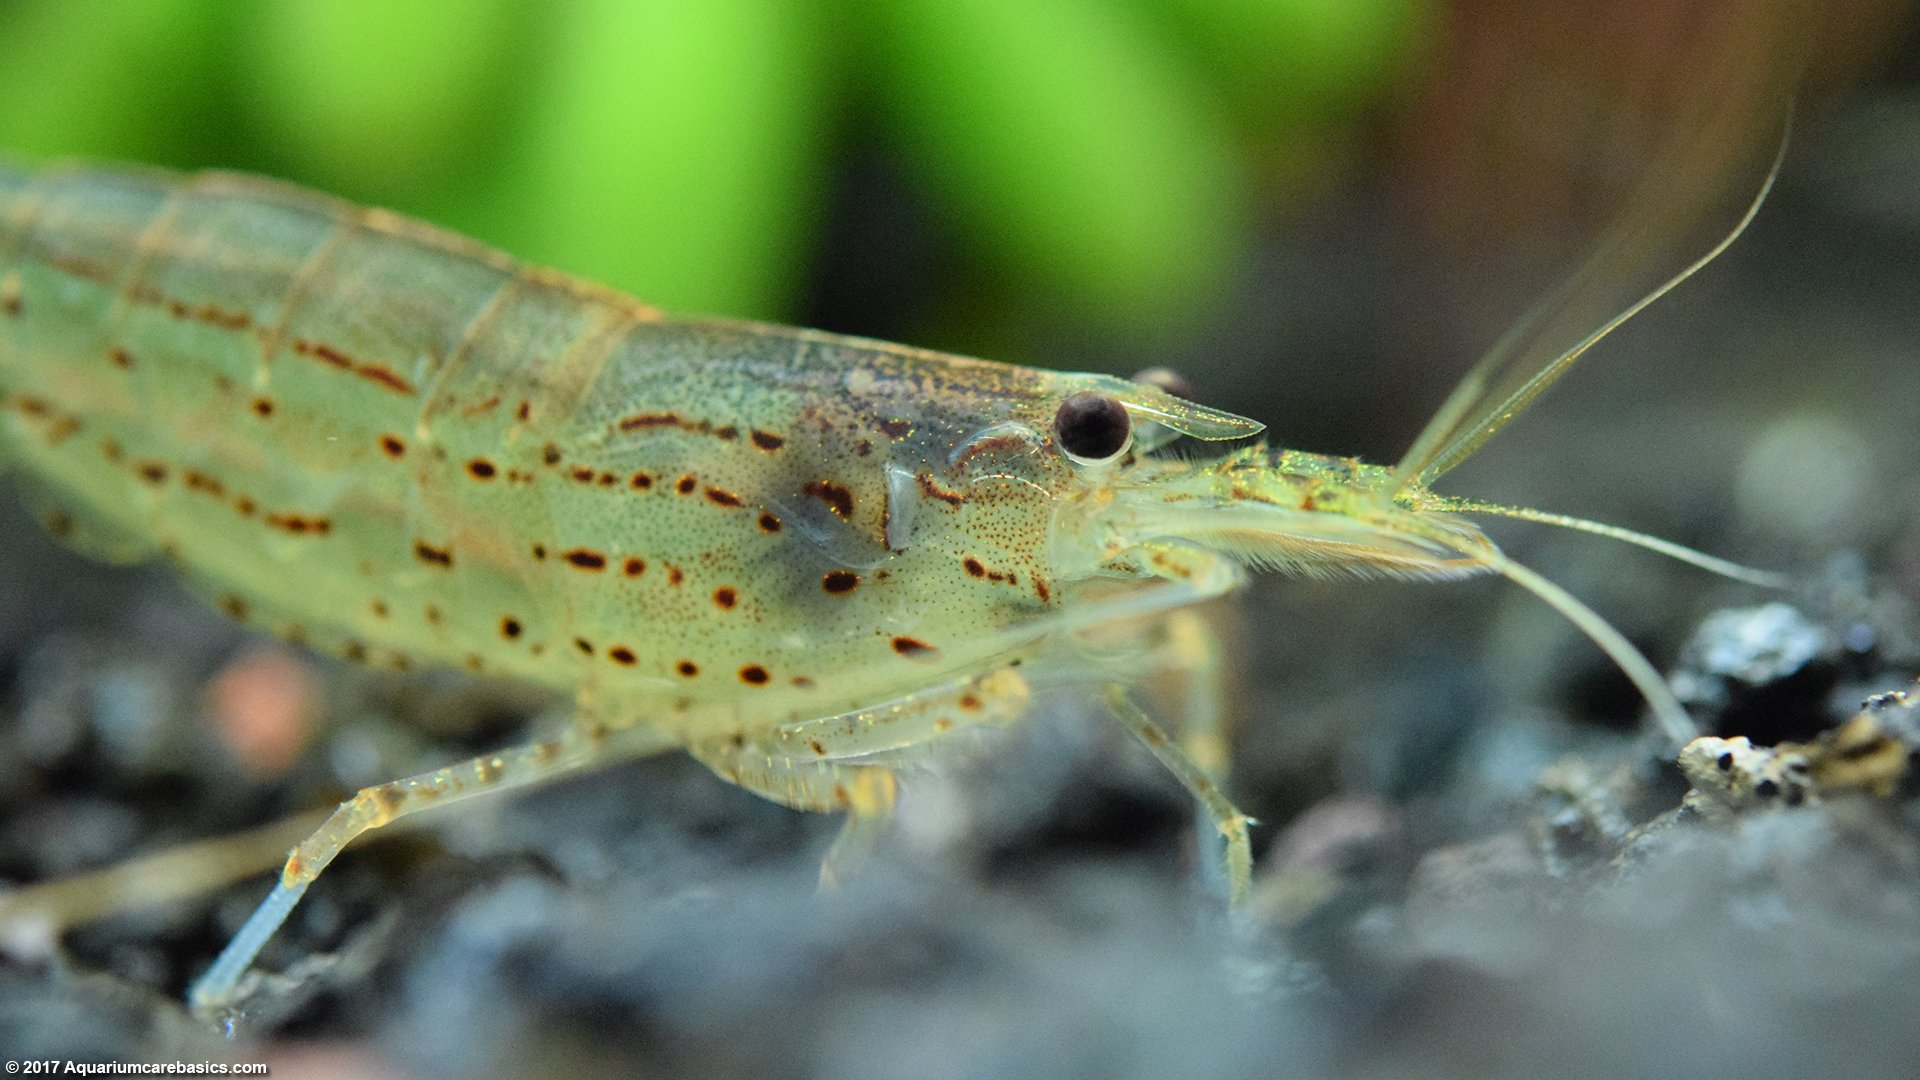 Freshwater Shrimp Can Be Great Additions To A Tank - VideoFreshwater Shrimp